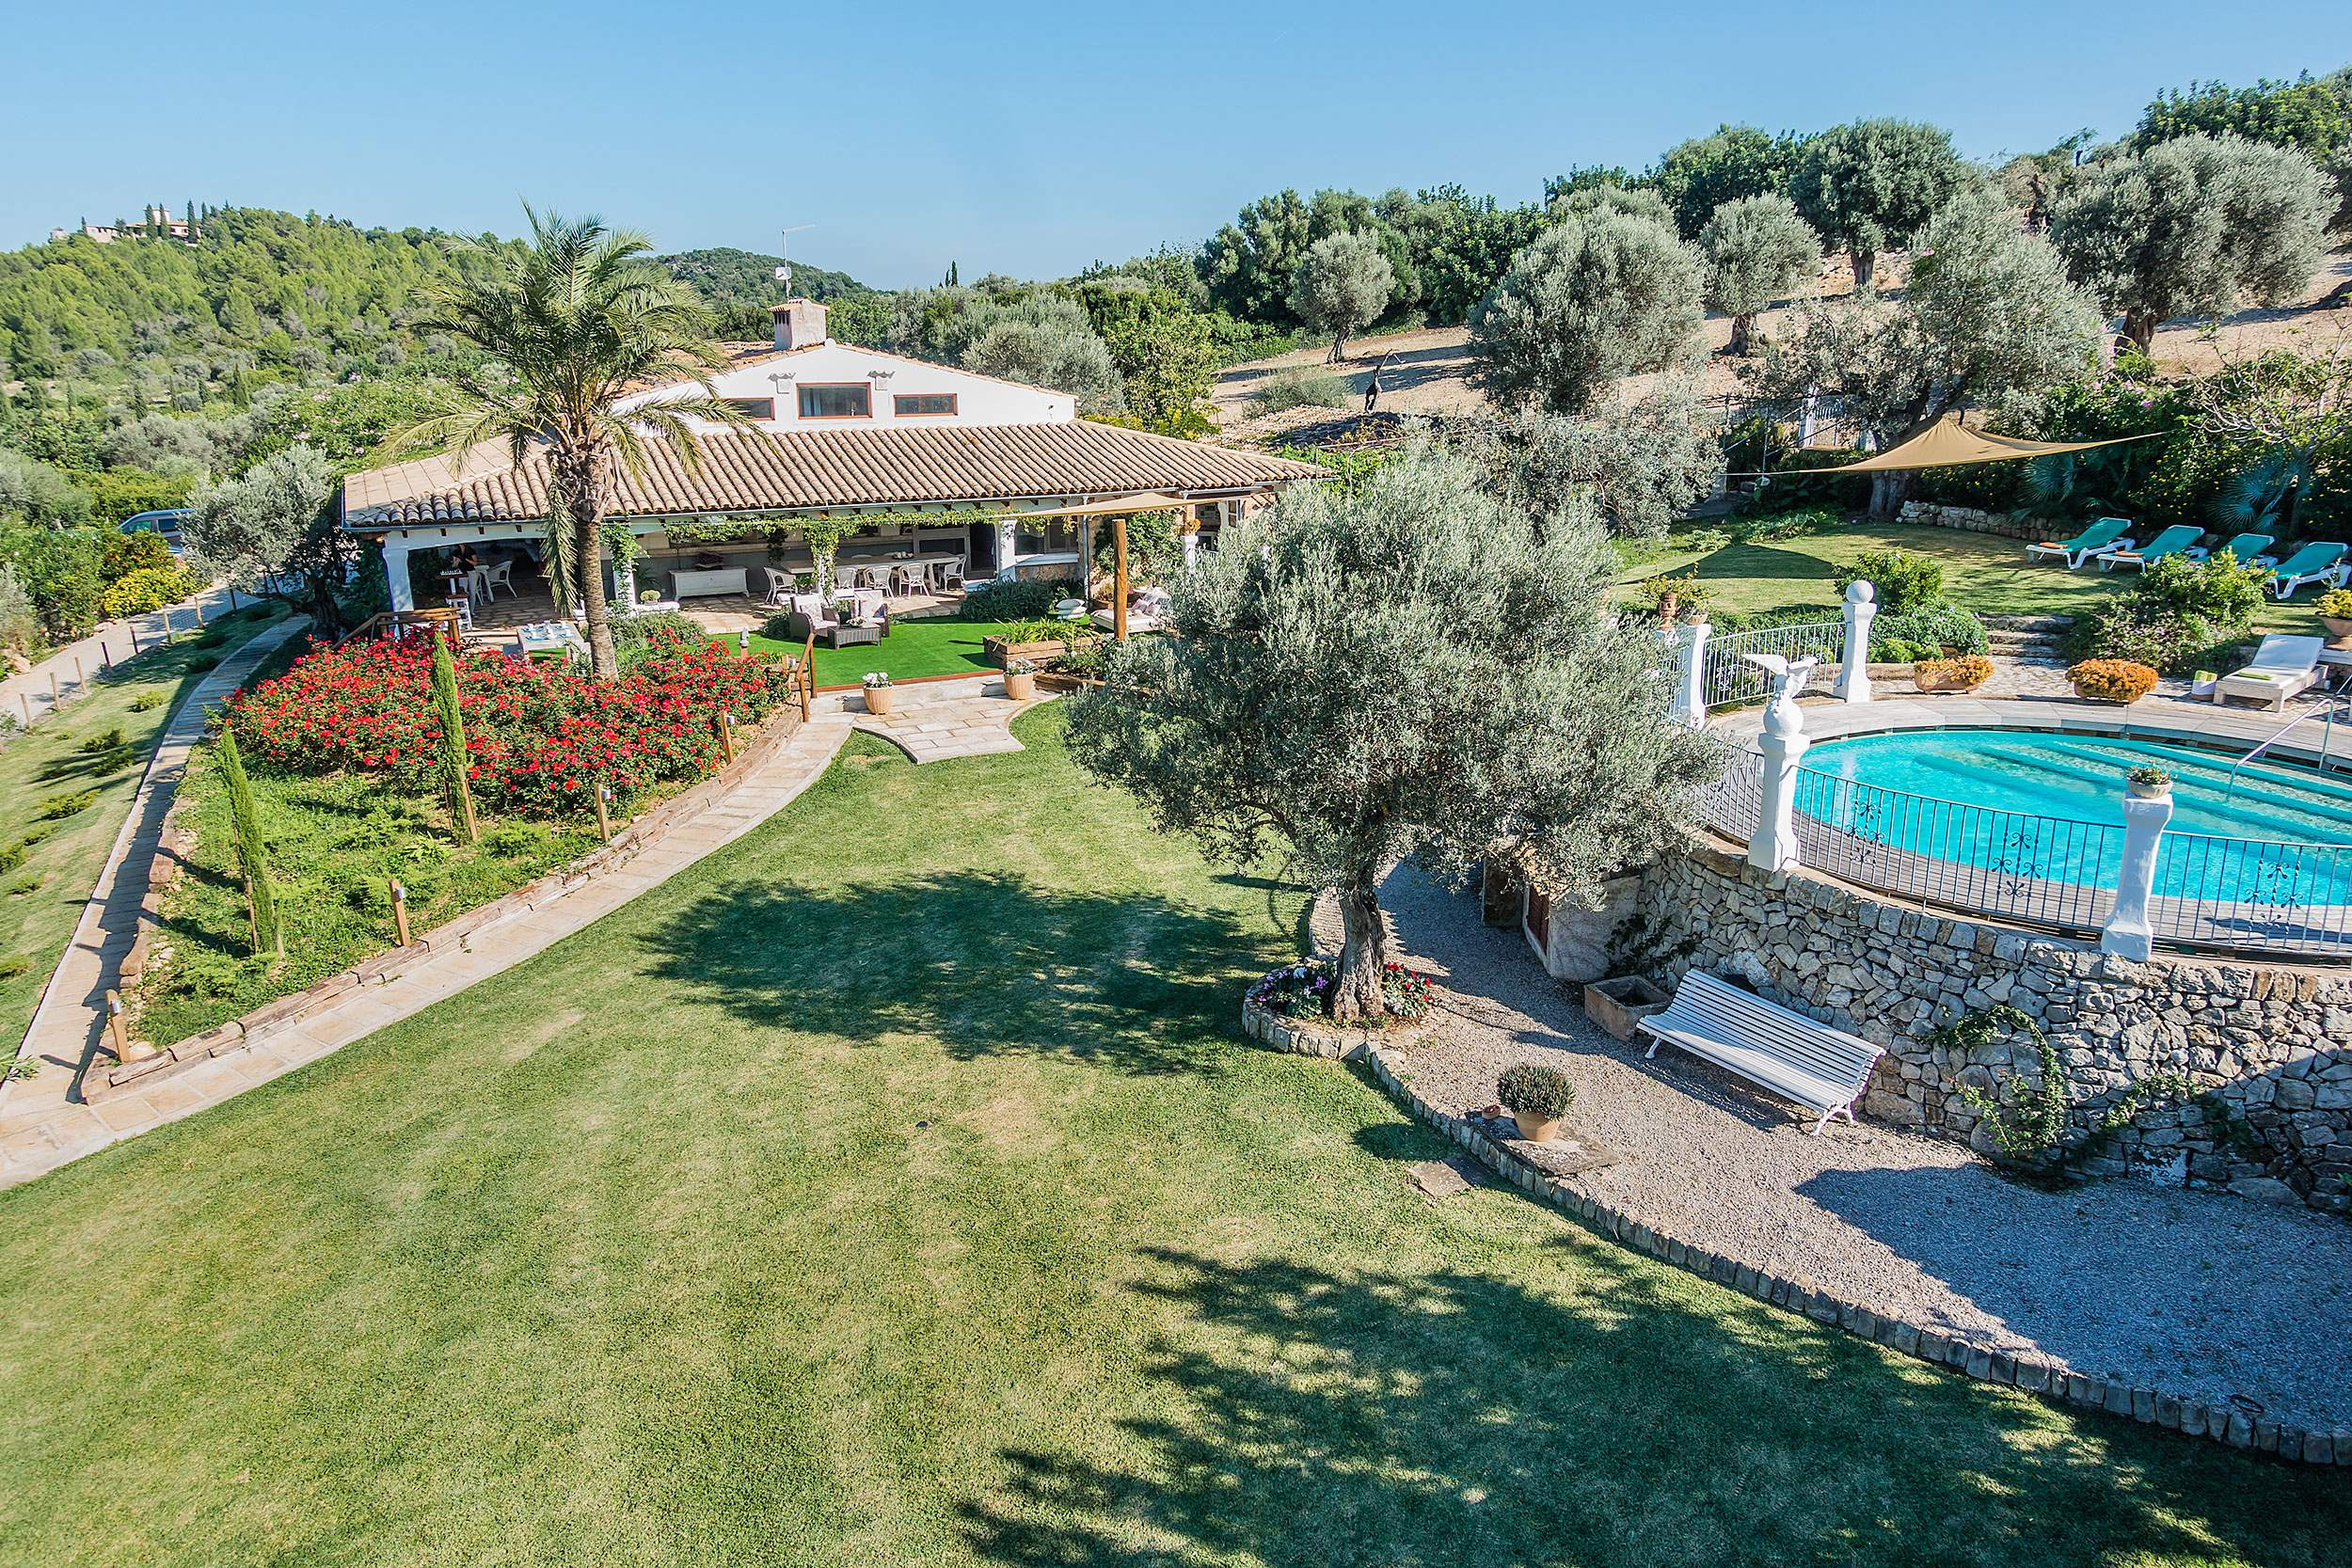 La Rota, 9 - 12 persons, 6 bedroom villa in Pollensa & Puerto Pollensa , Majorca Photo #2